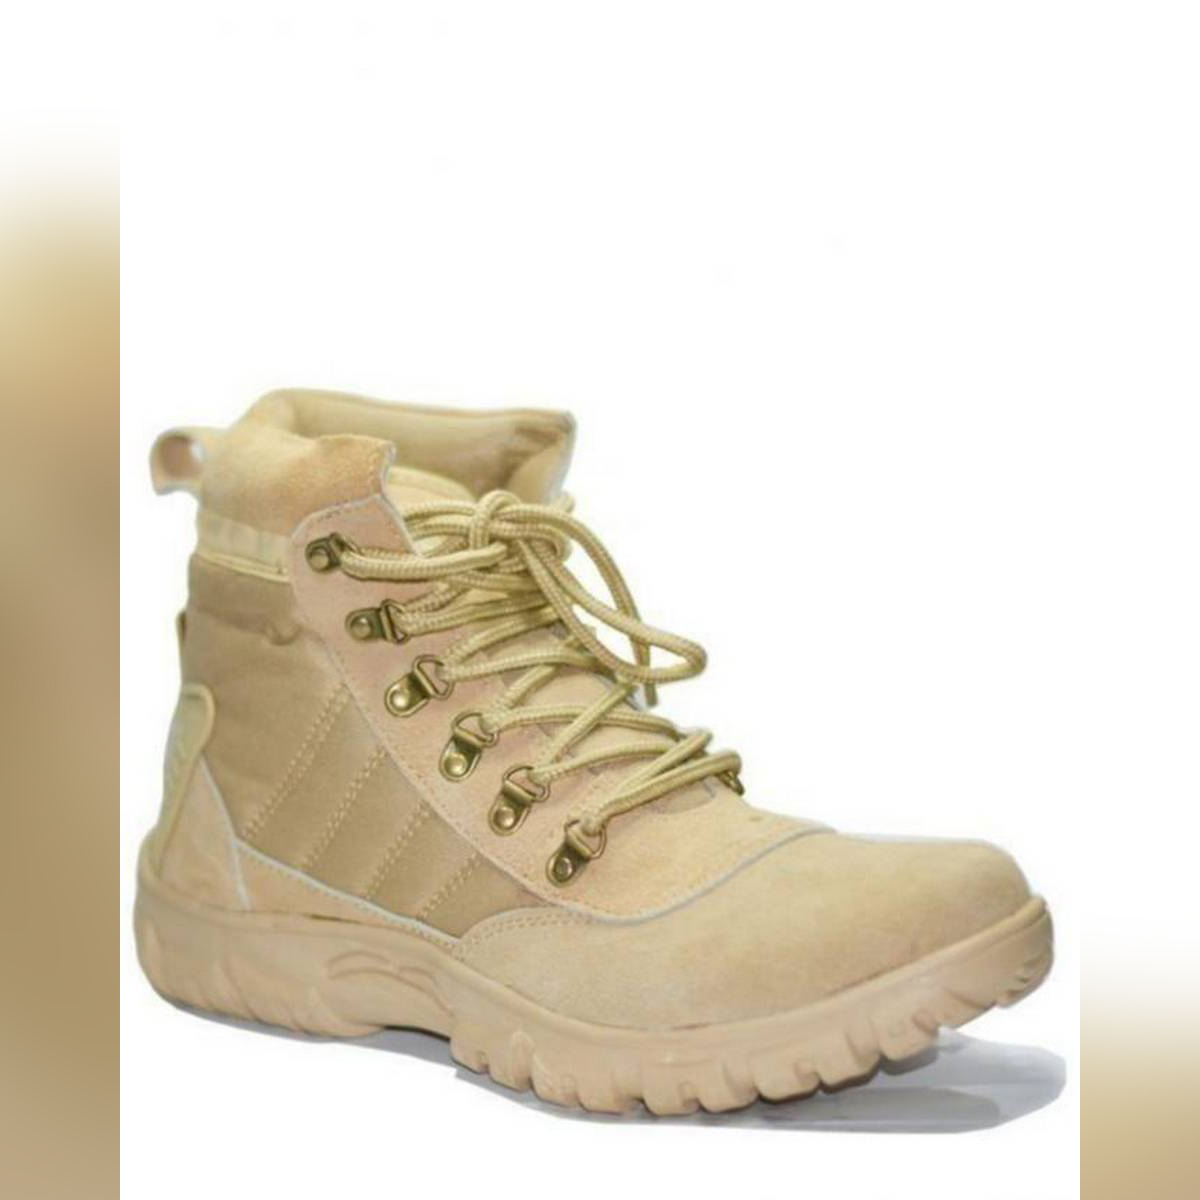 Walking Army Boots For Men